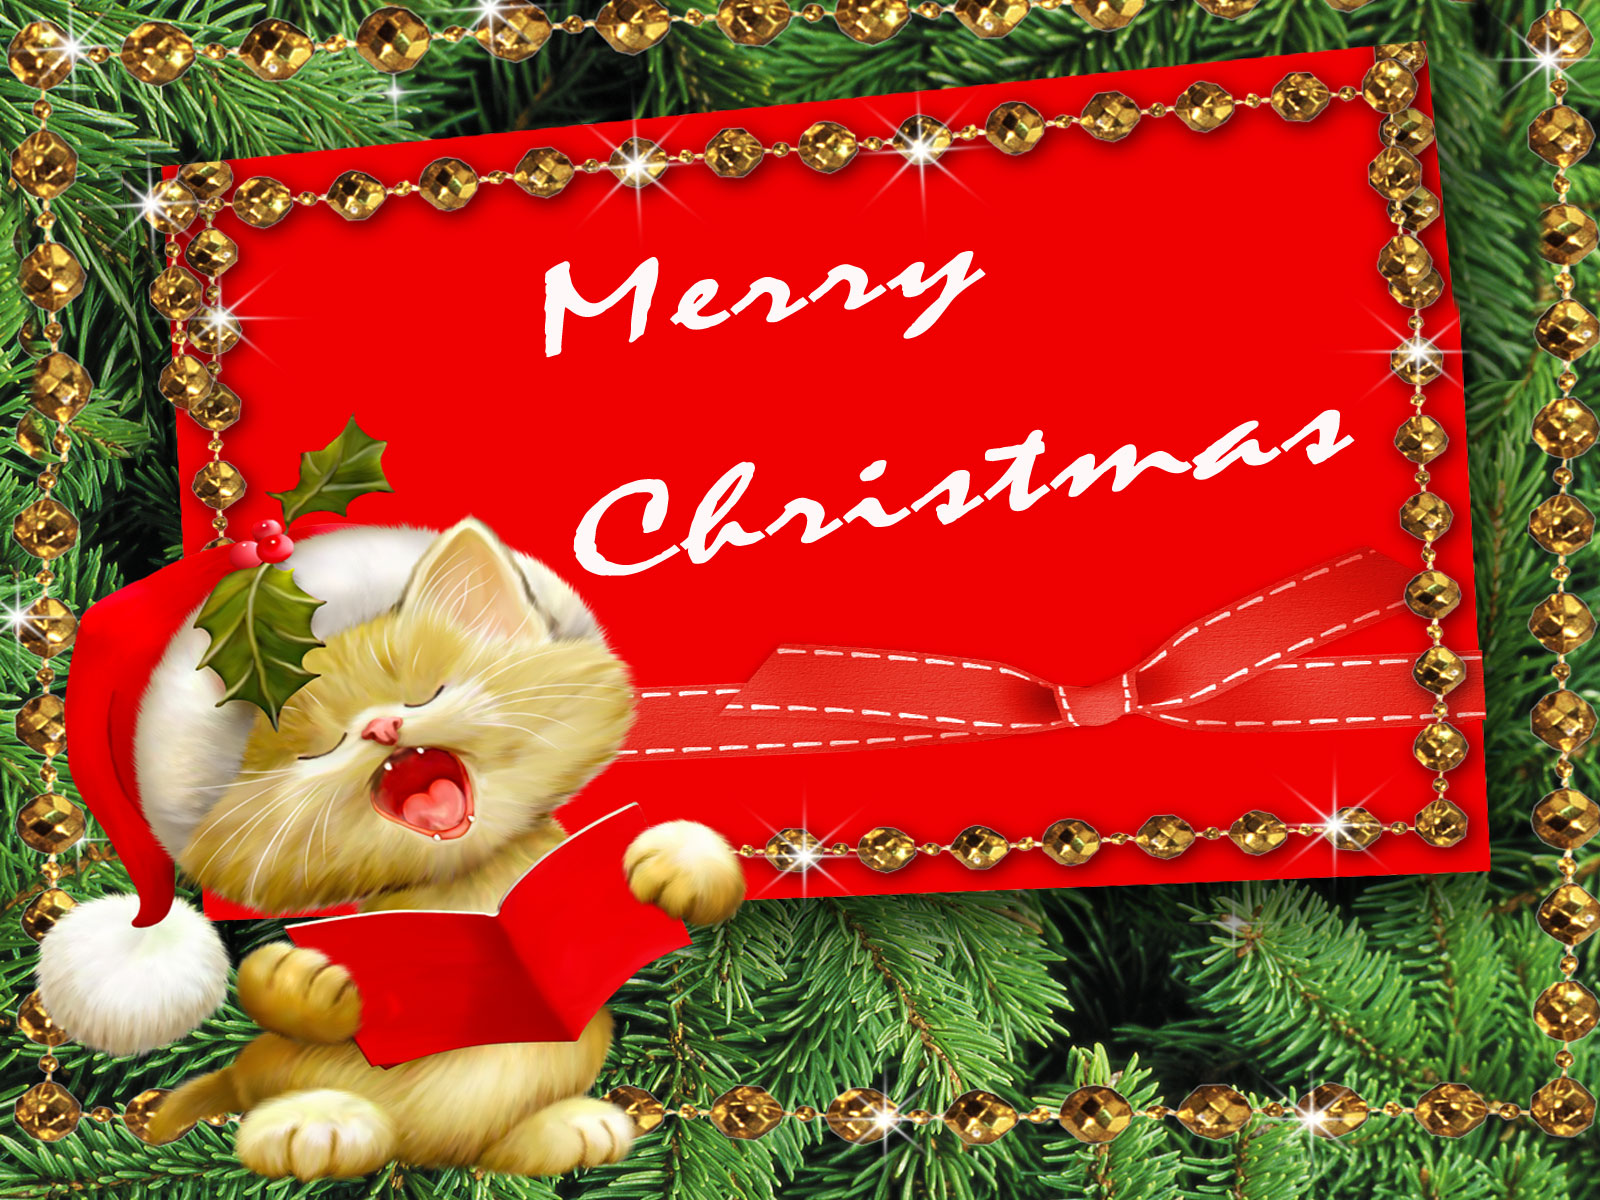 Merry Christmas Desktop Backgrounds Download Merry Christmas 1600x1200